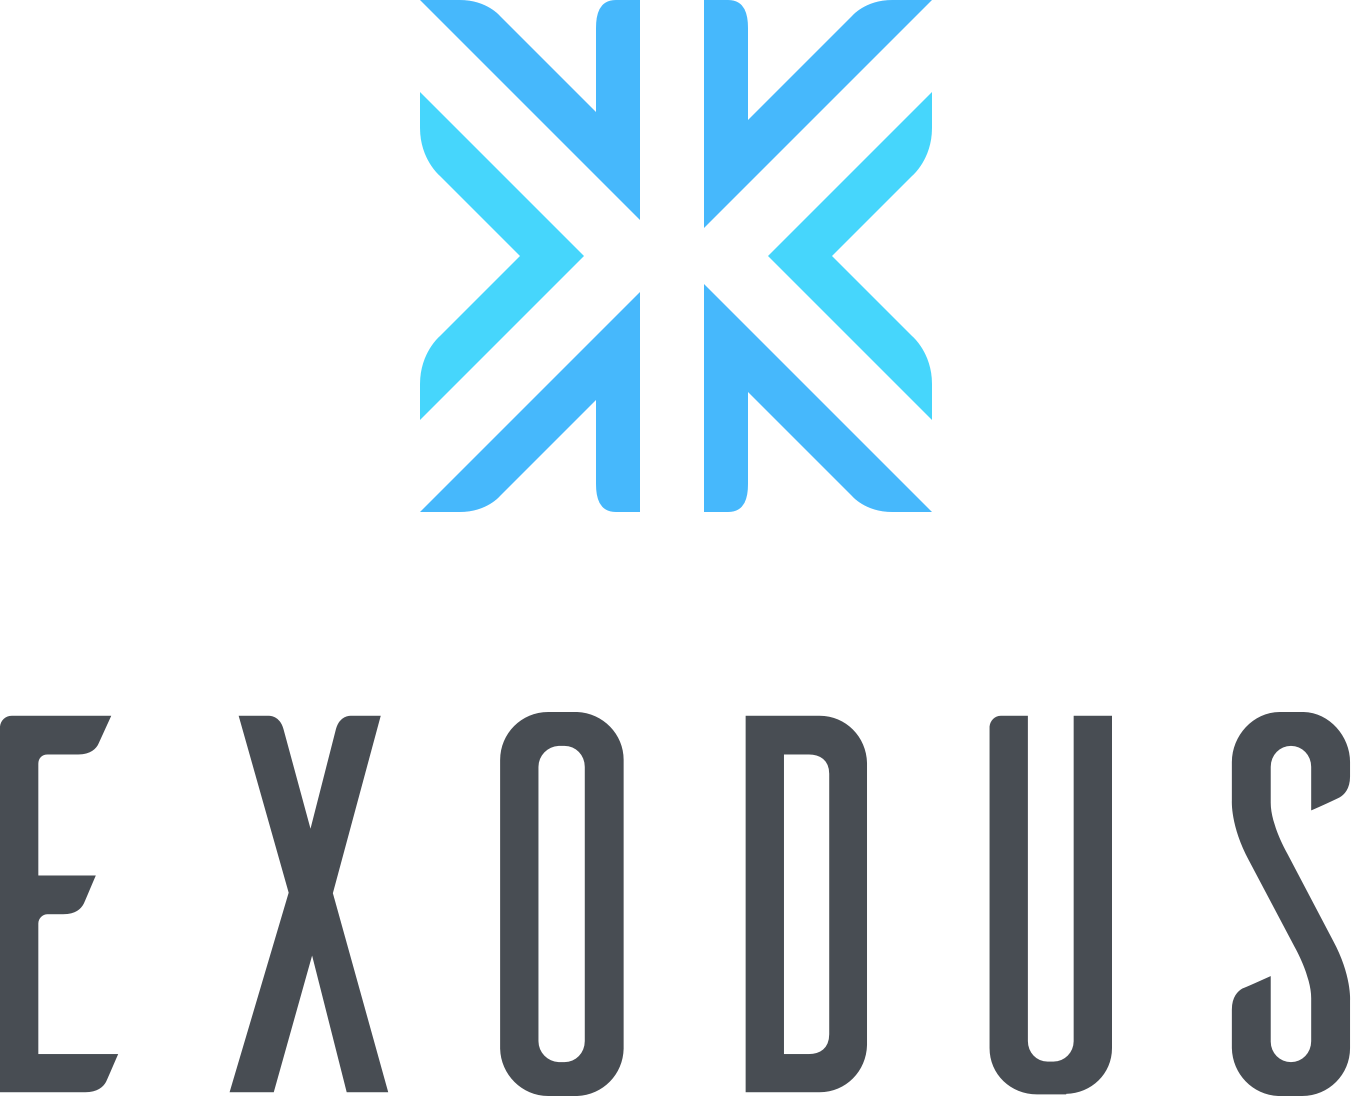 Exodus cryptocurrency wallet logo